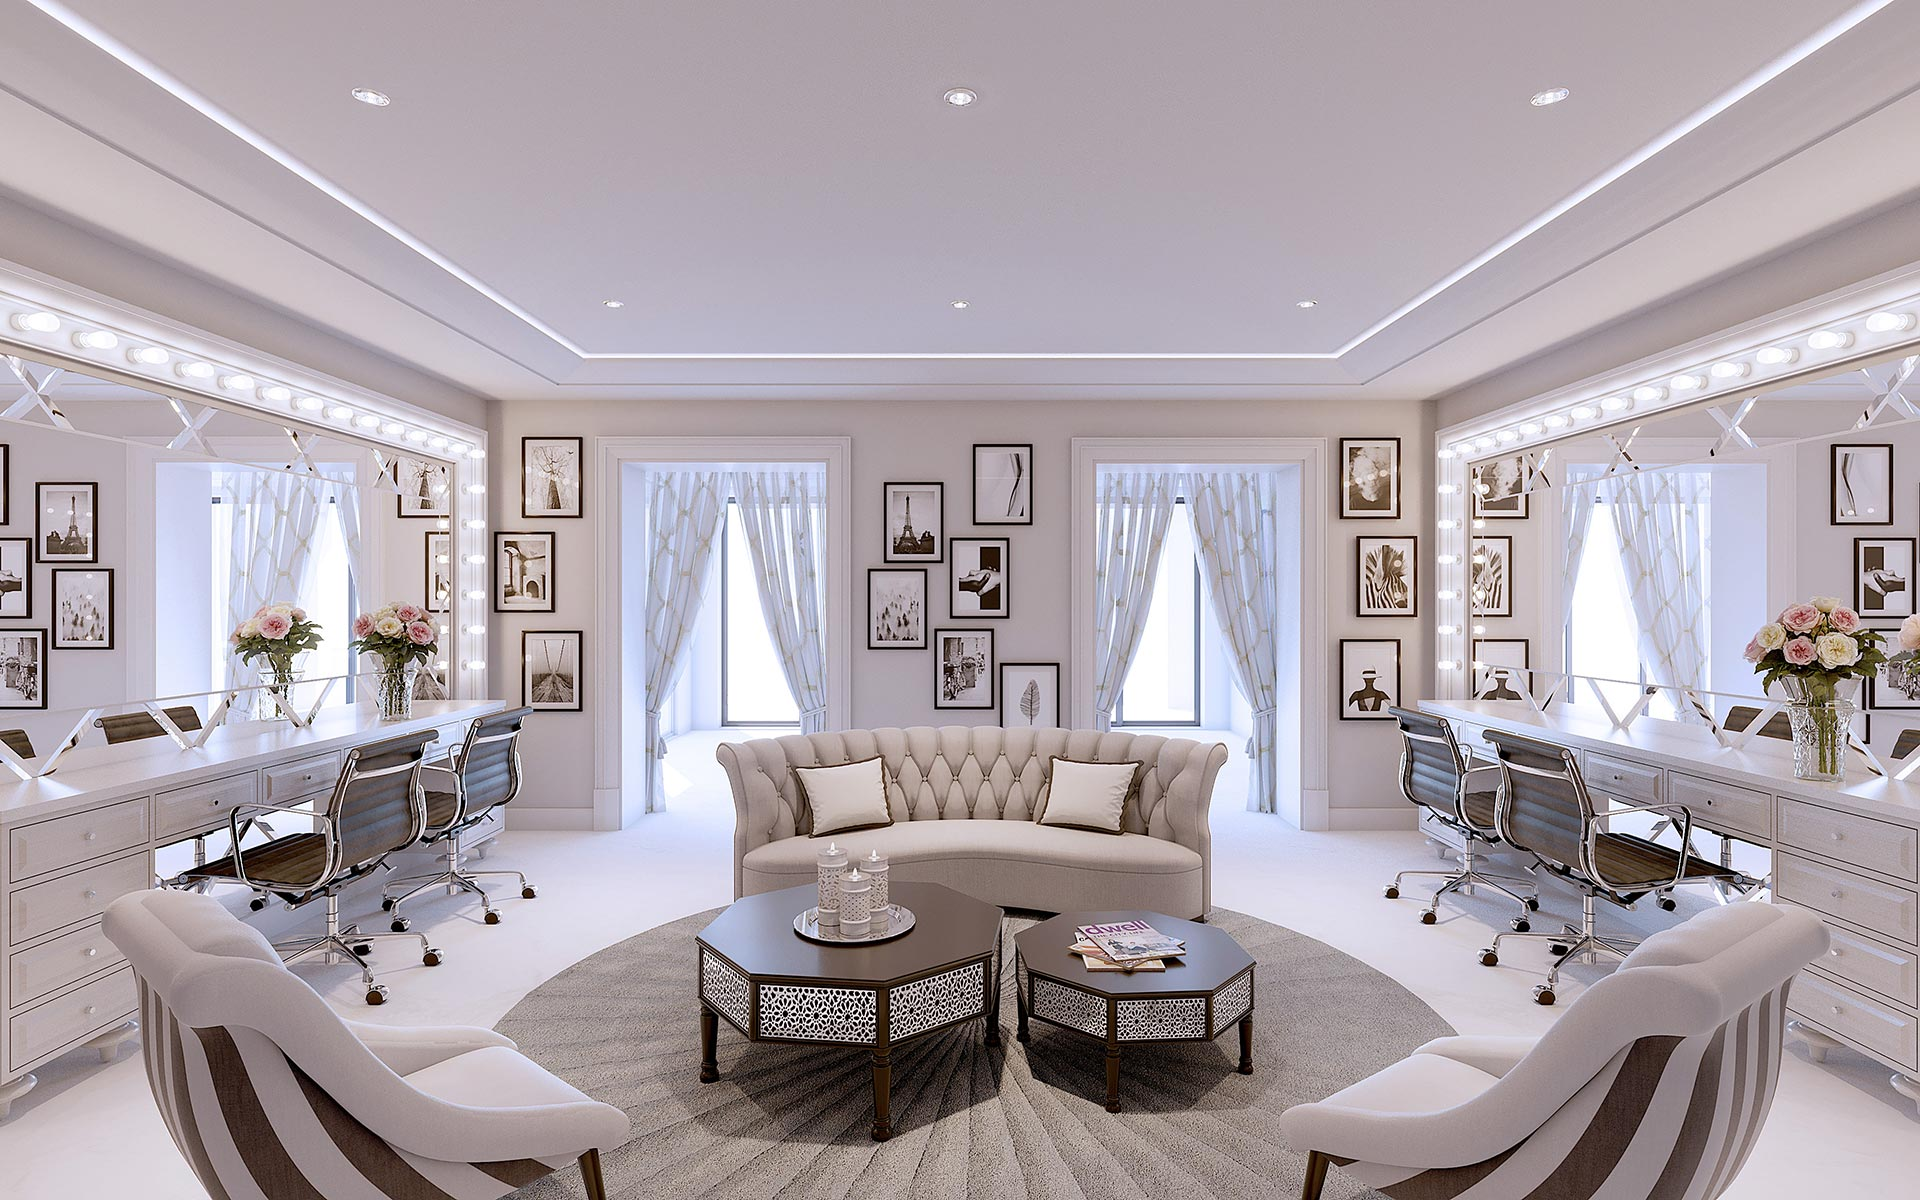 3D Visualization of a hairdresser in a luxury villa